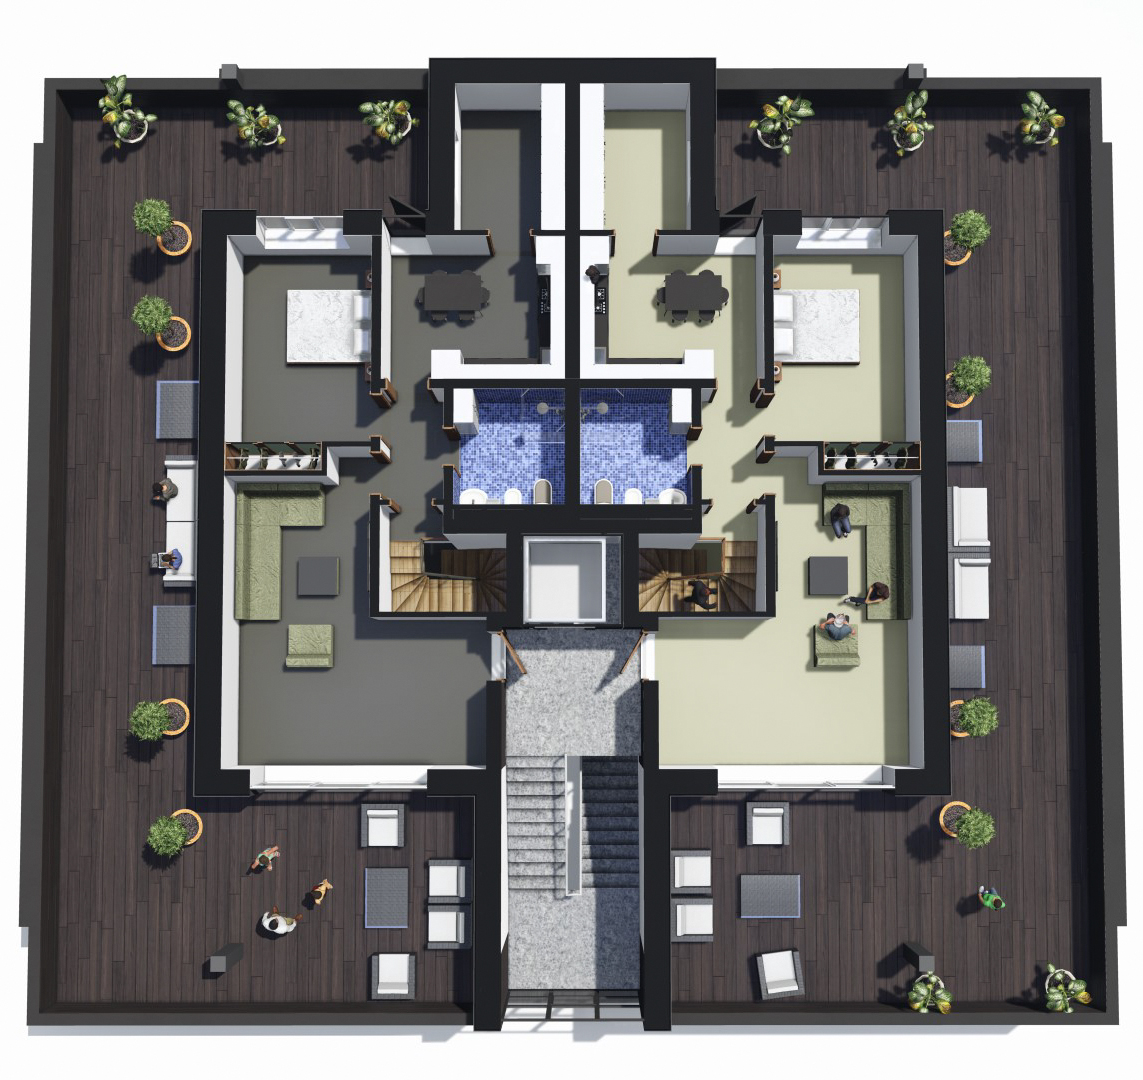 Penthouse 2nd floor